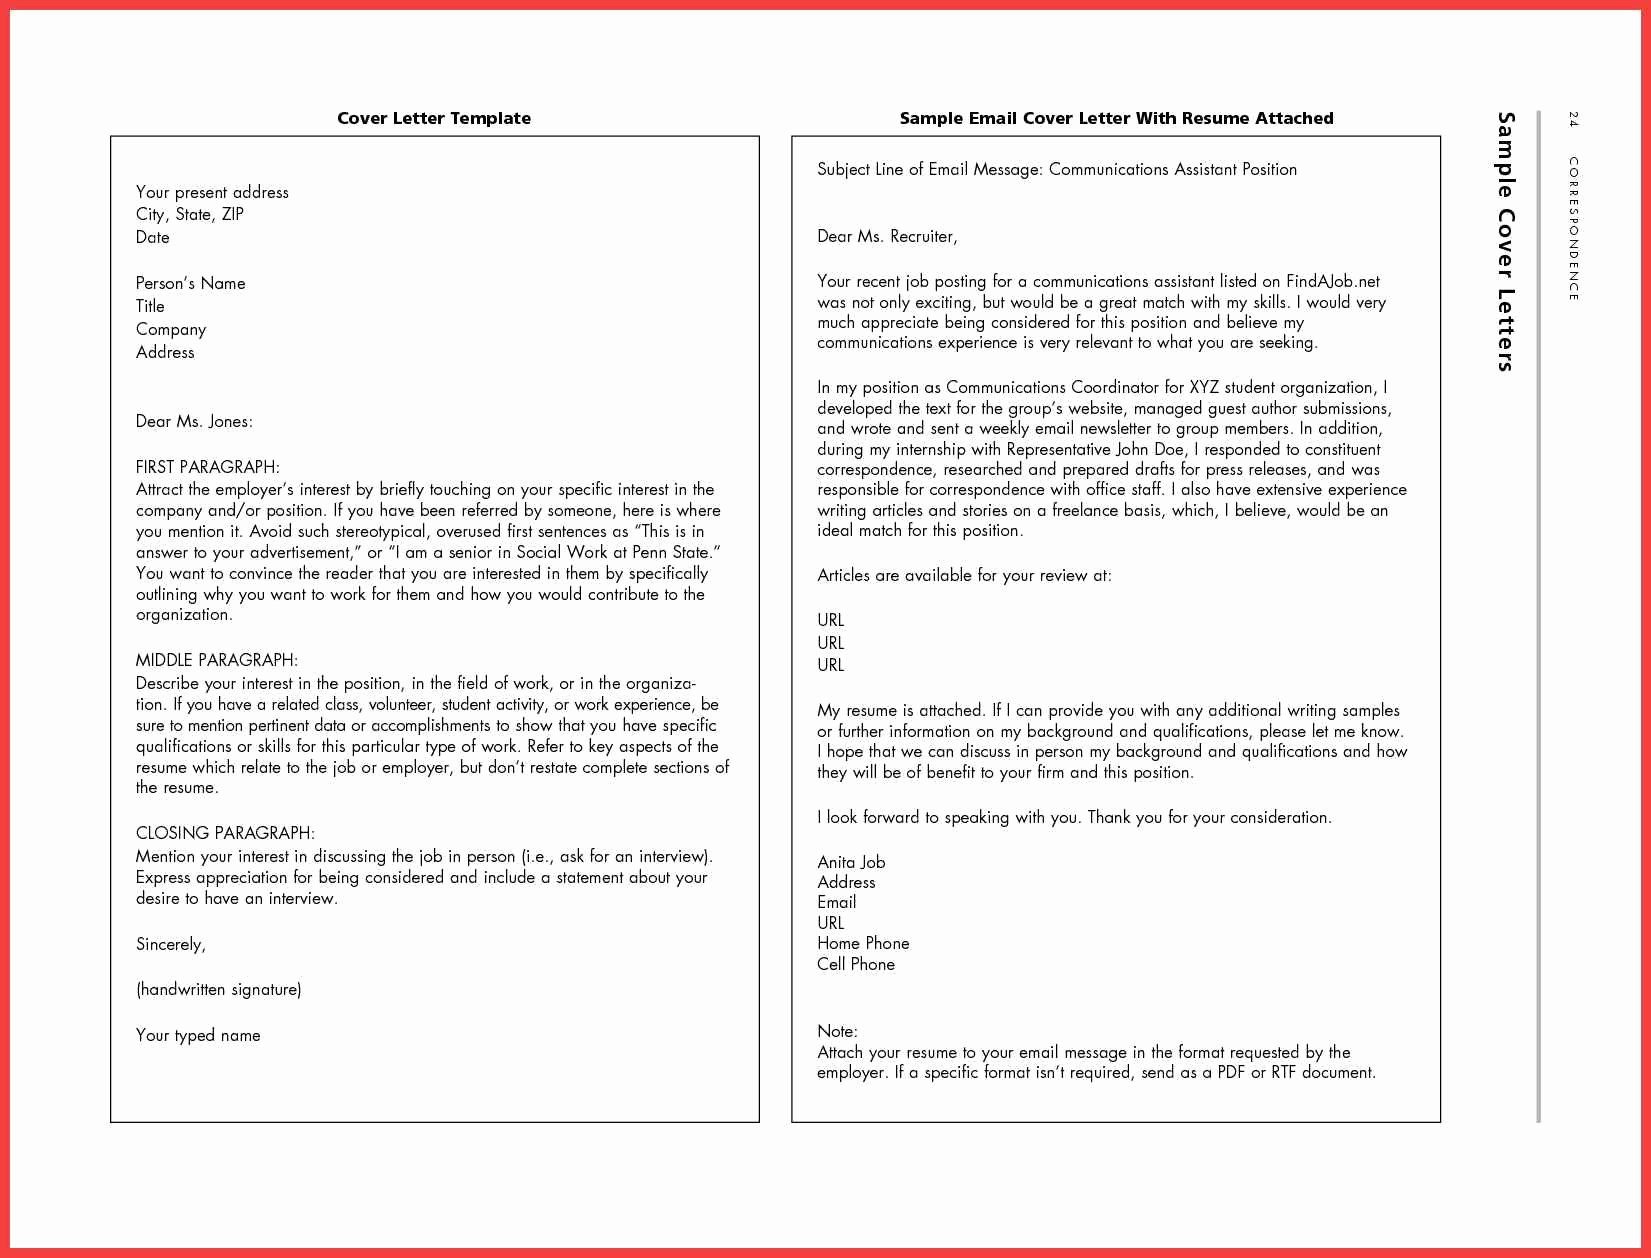 Cover Letter Template Email